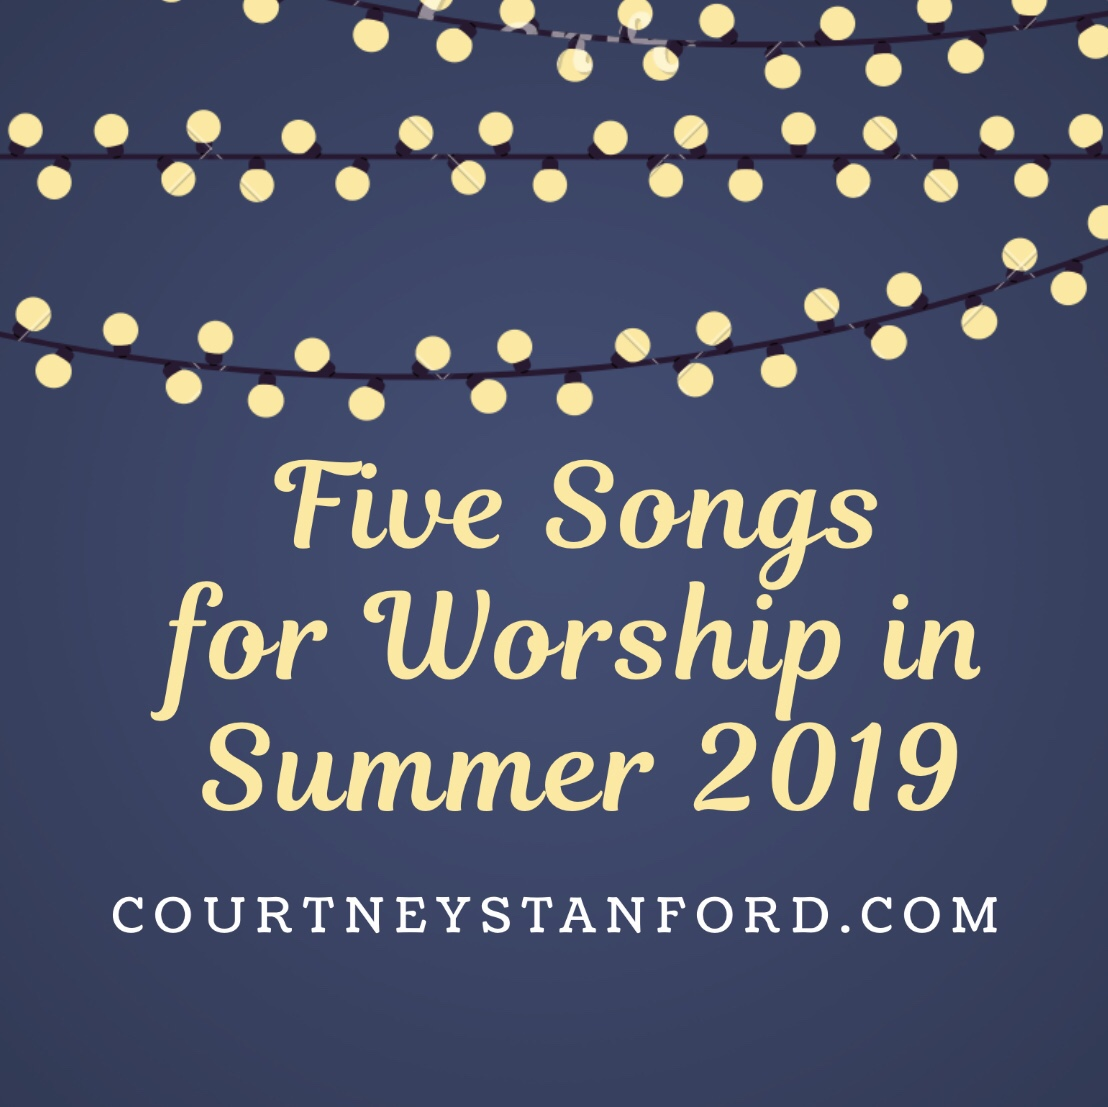 Five Songs for Worship in Summer 2019 • Let Every Heart